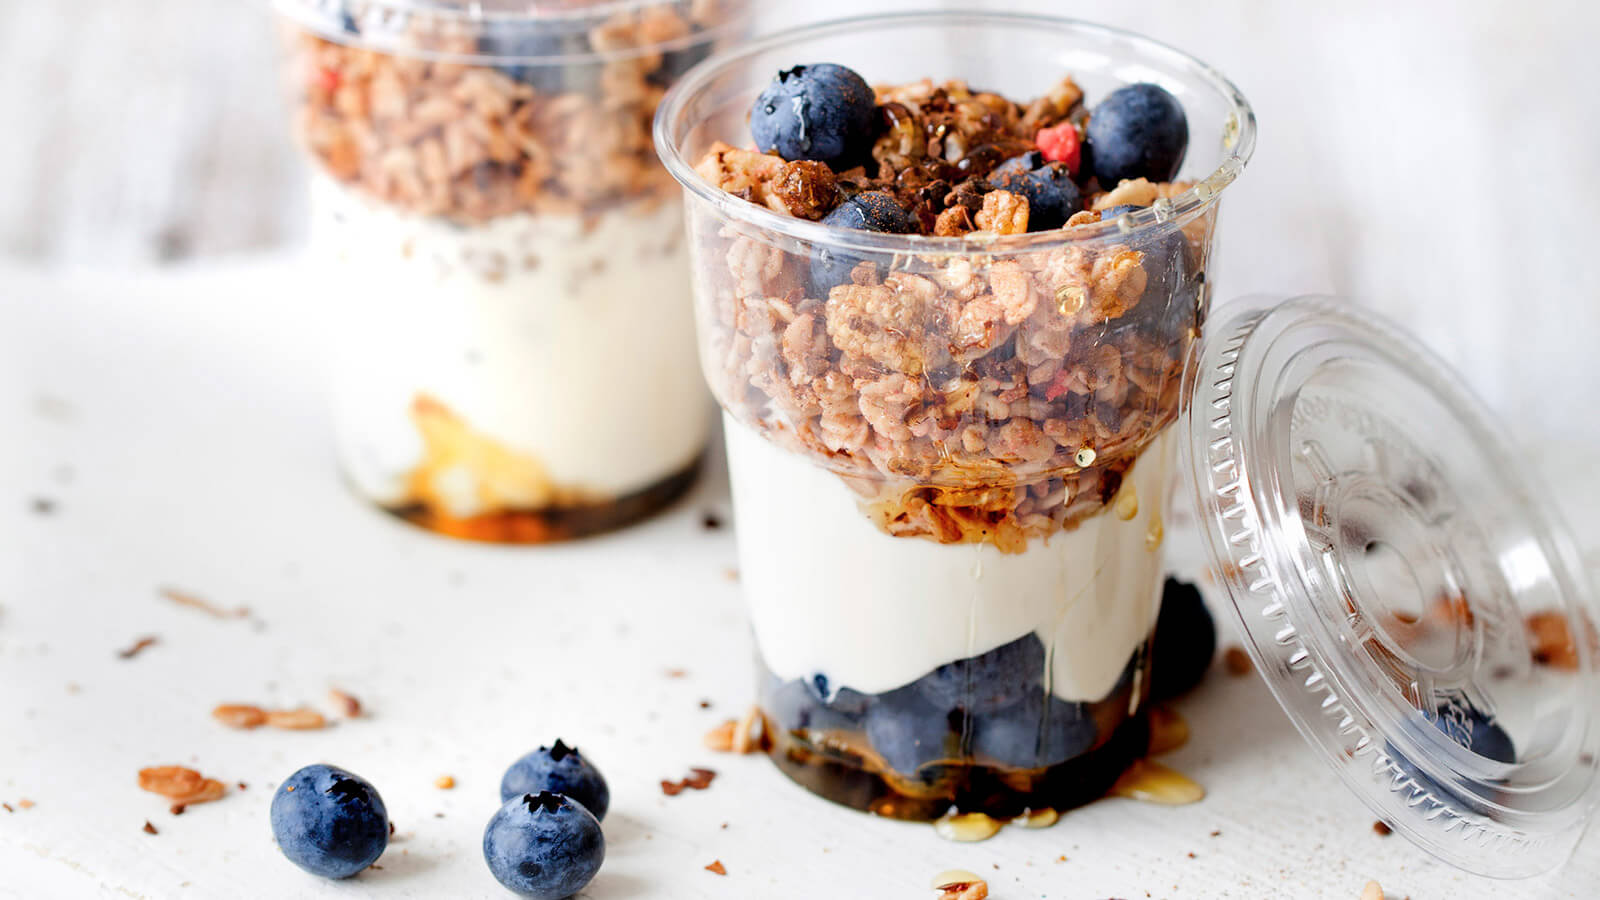 Granola with blueberrys and crème fraiche in a plastic cup